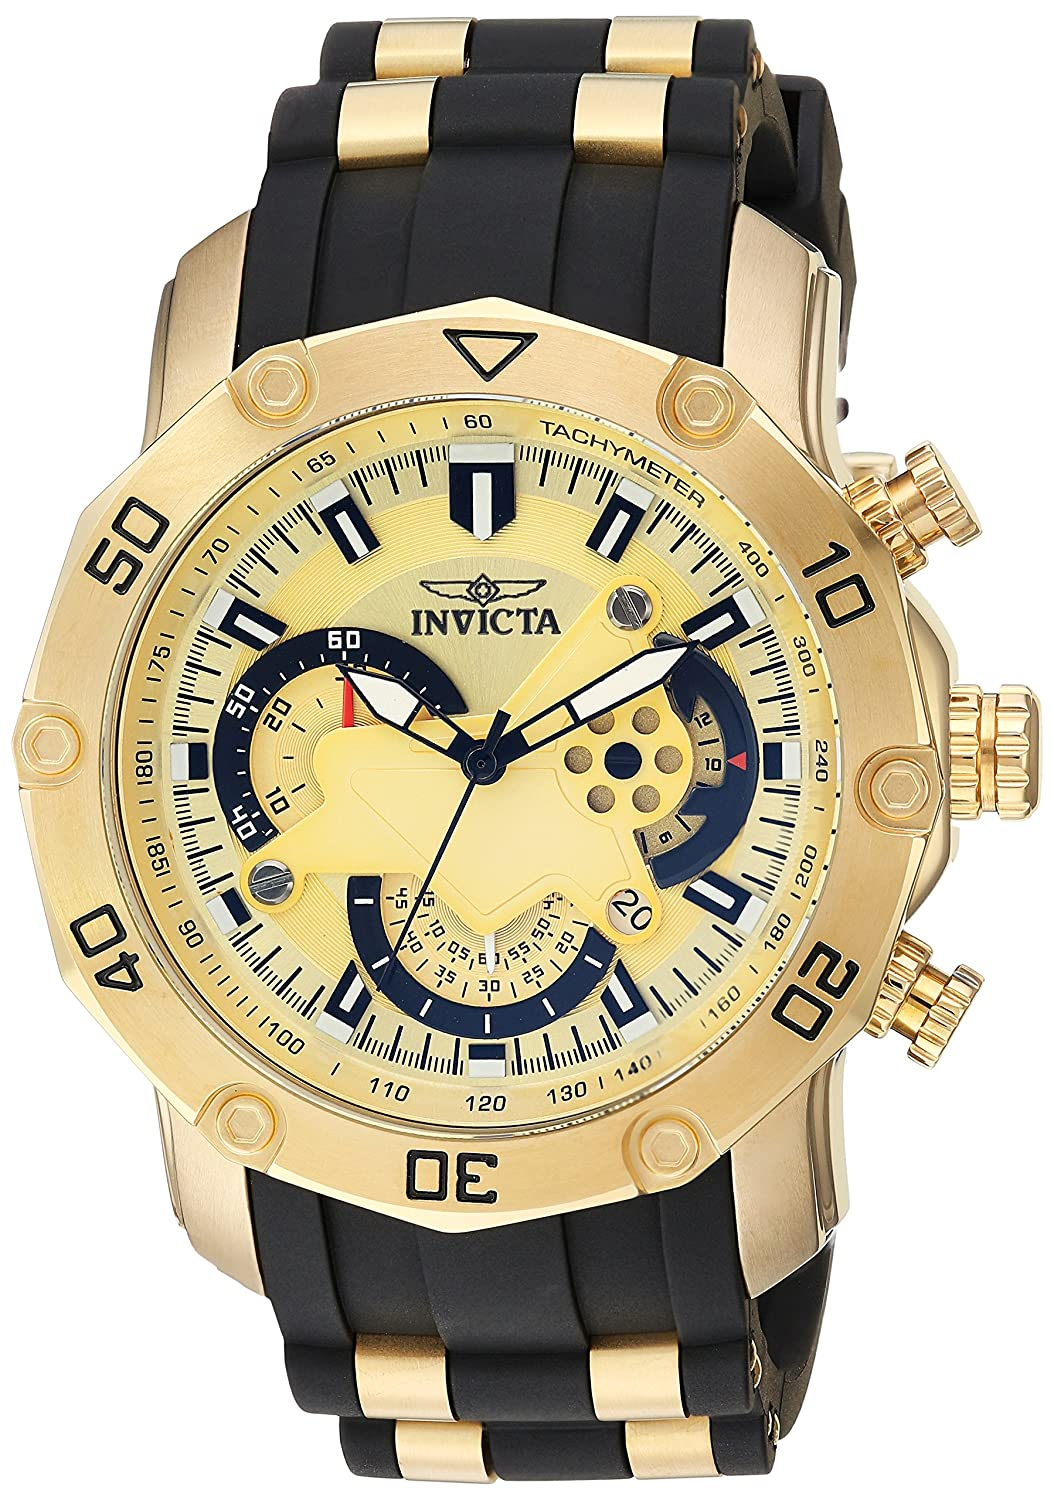 Invicta Men s Pro Diver Stainless Steel Quartz Watch with Silicone Strap, Black, 25 Model 23427